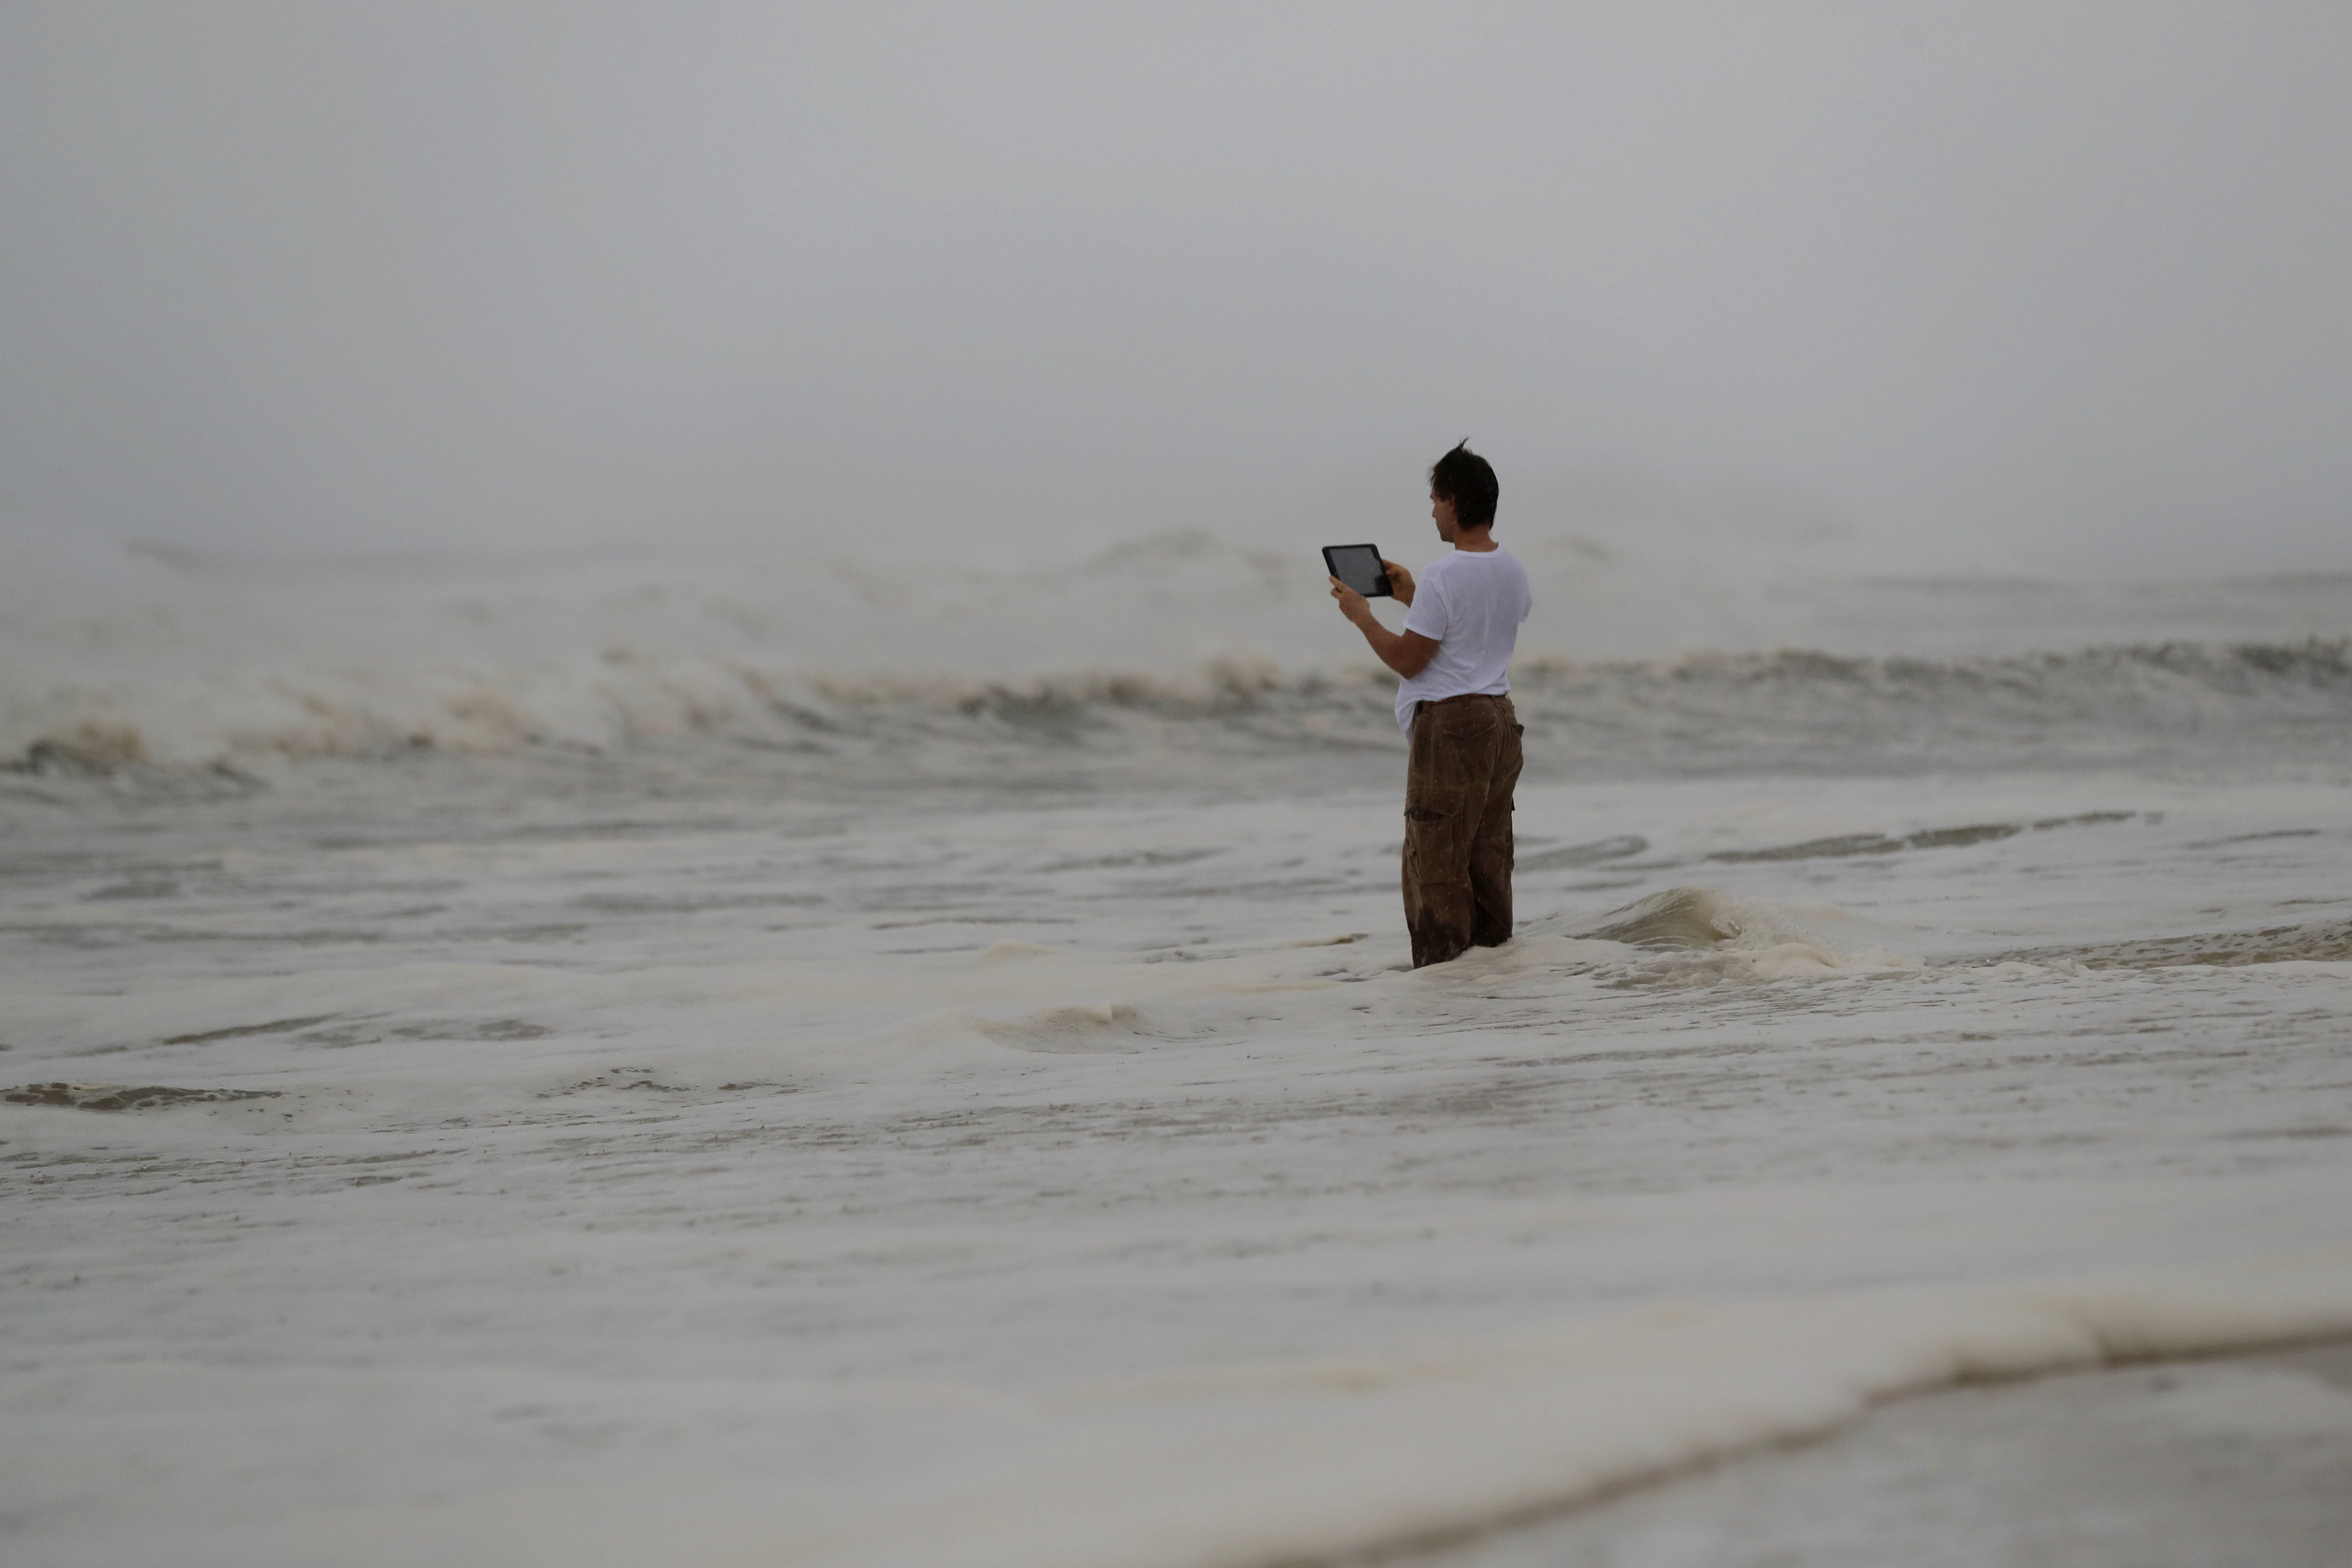 Peter Malave records the surf from encroaching Hurricane Michael, which is expected to make landfall Wednesday, Oct. 10, 2018, in Panama City Beach, Fla. The hurricane center says Michael will be the first Category 4 hurricane to make landfall on the Florida Panhandle. (AP Photo/Gerald Herbert)